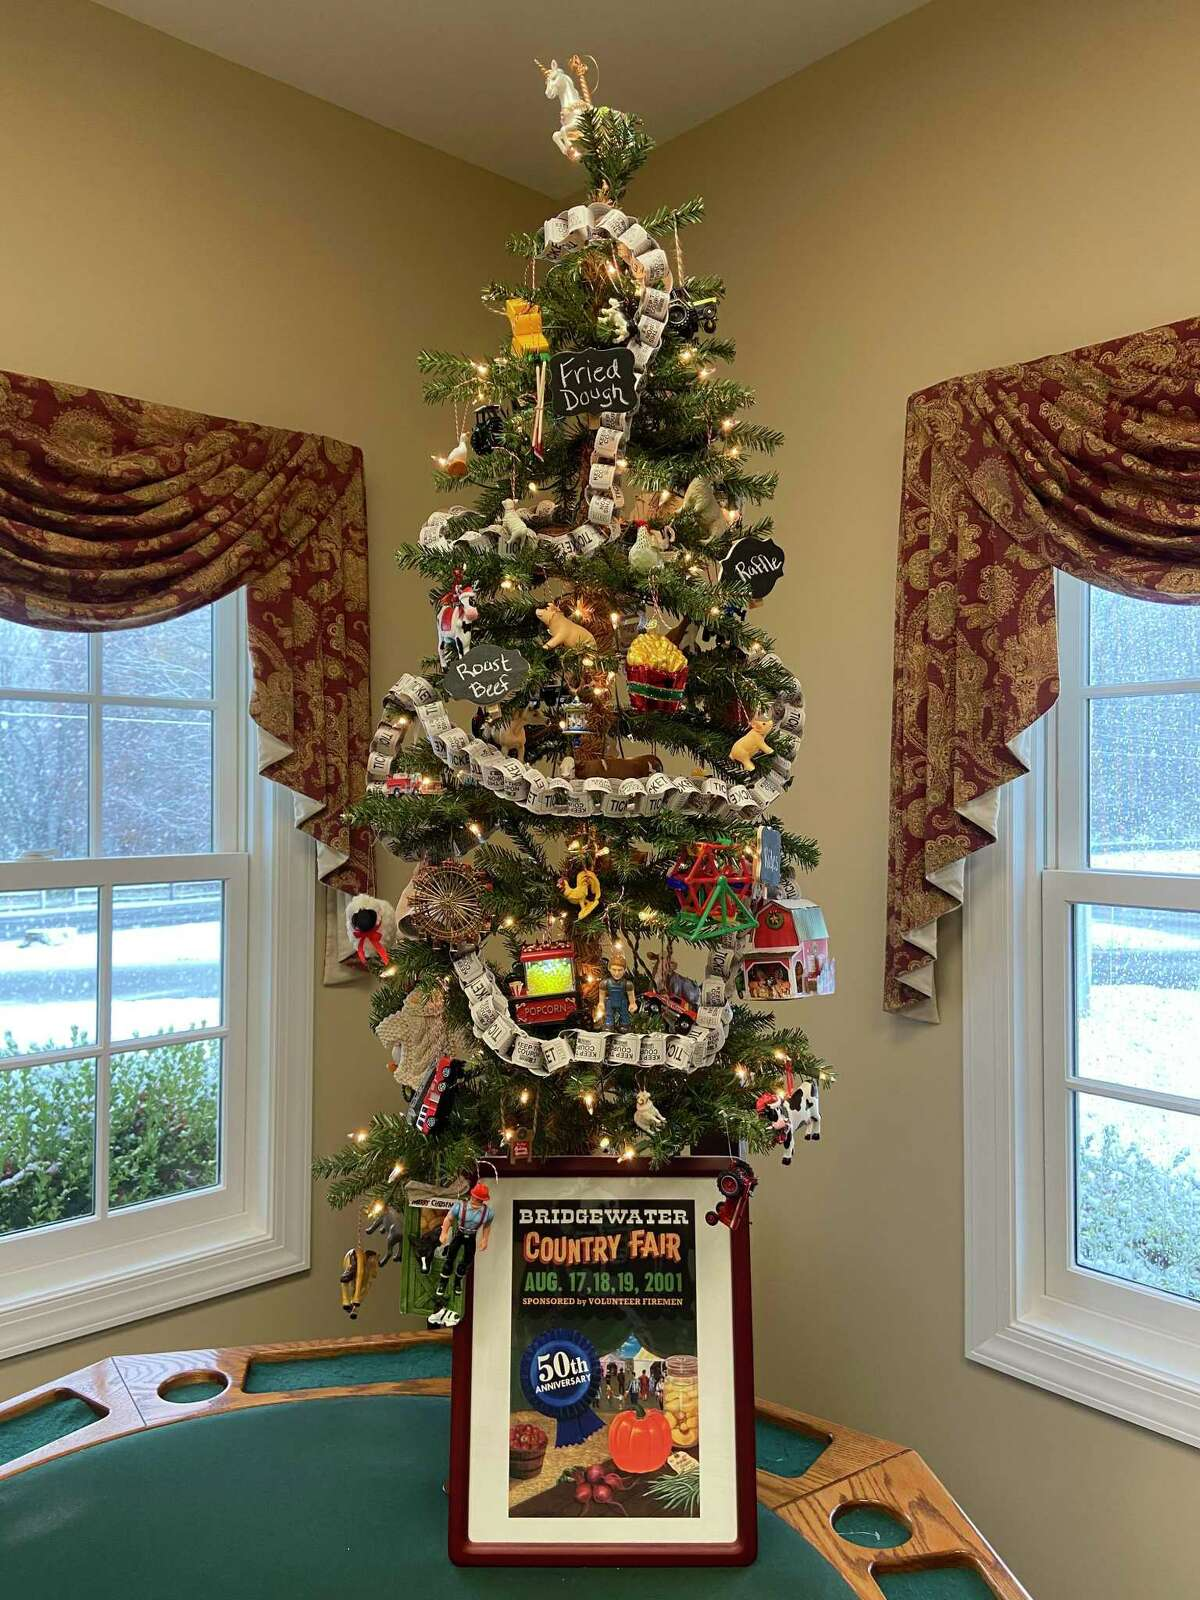 Hilltop Center in Bridgewater has entered a tree in the Ann's Place Festival of Trees event. Voting runs through Dec. 5.